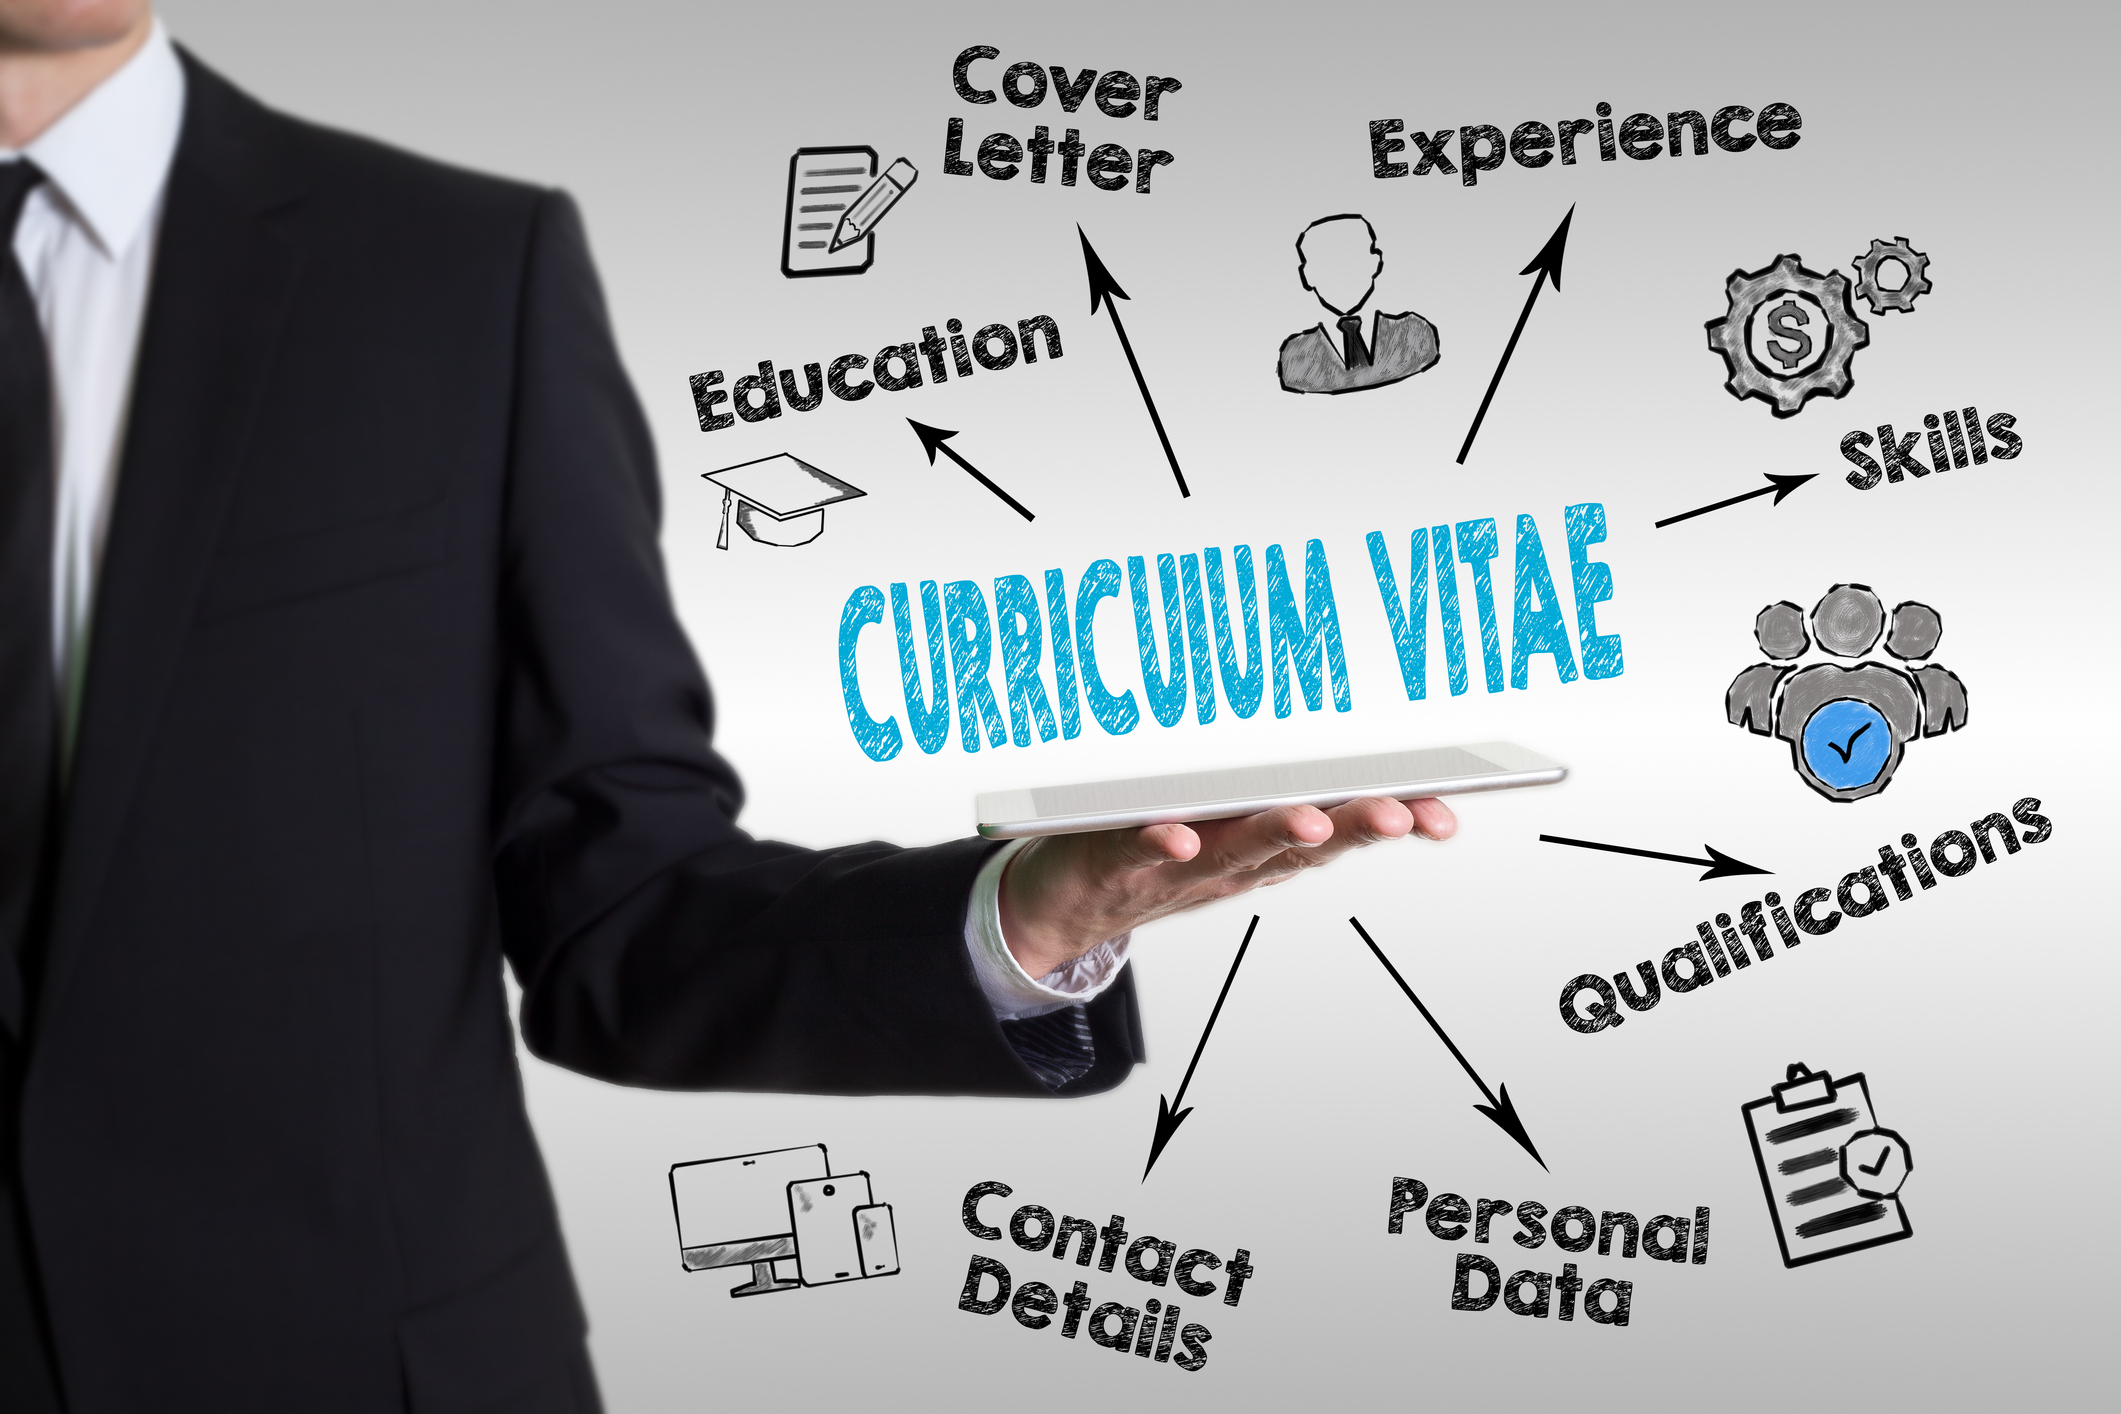 Curriculum Vitae concept. Man holding a tablet computer